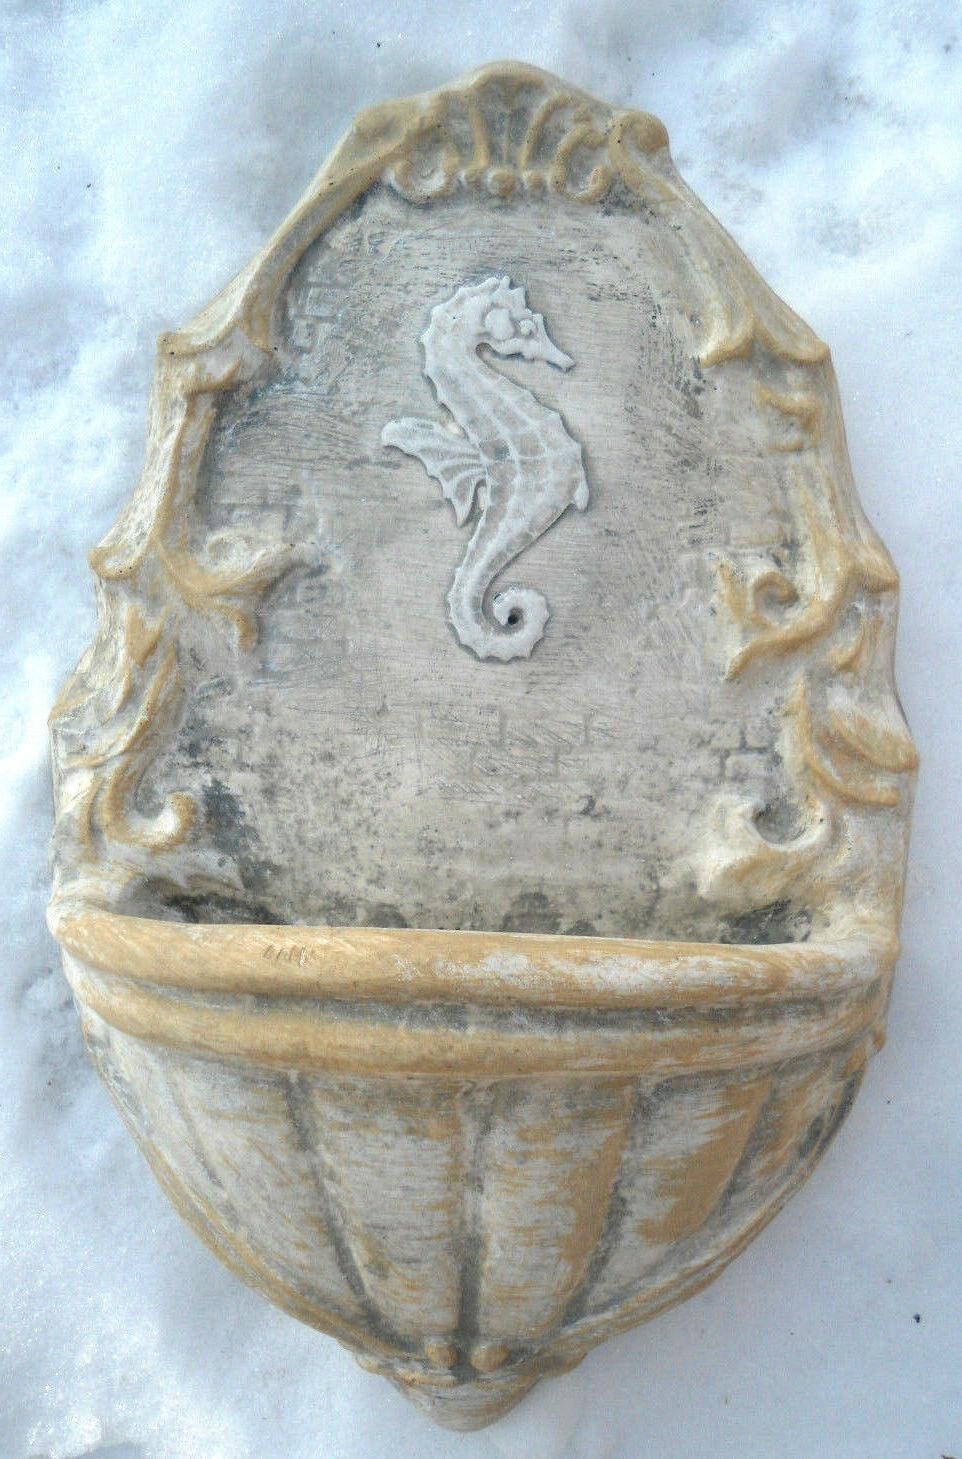 Seahorse feeder mold casting mould